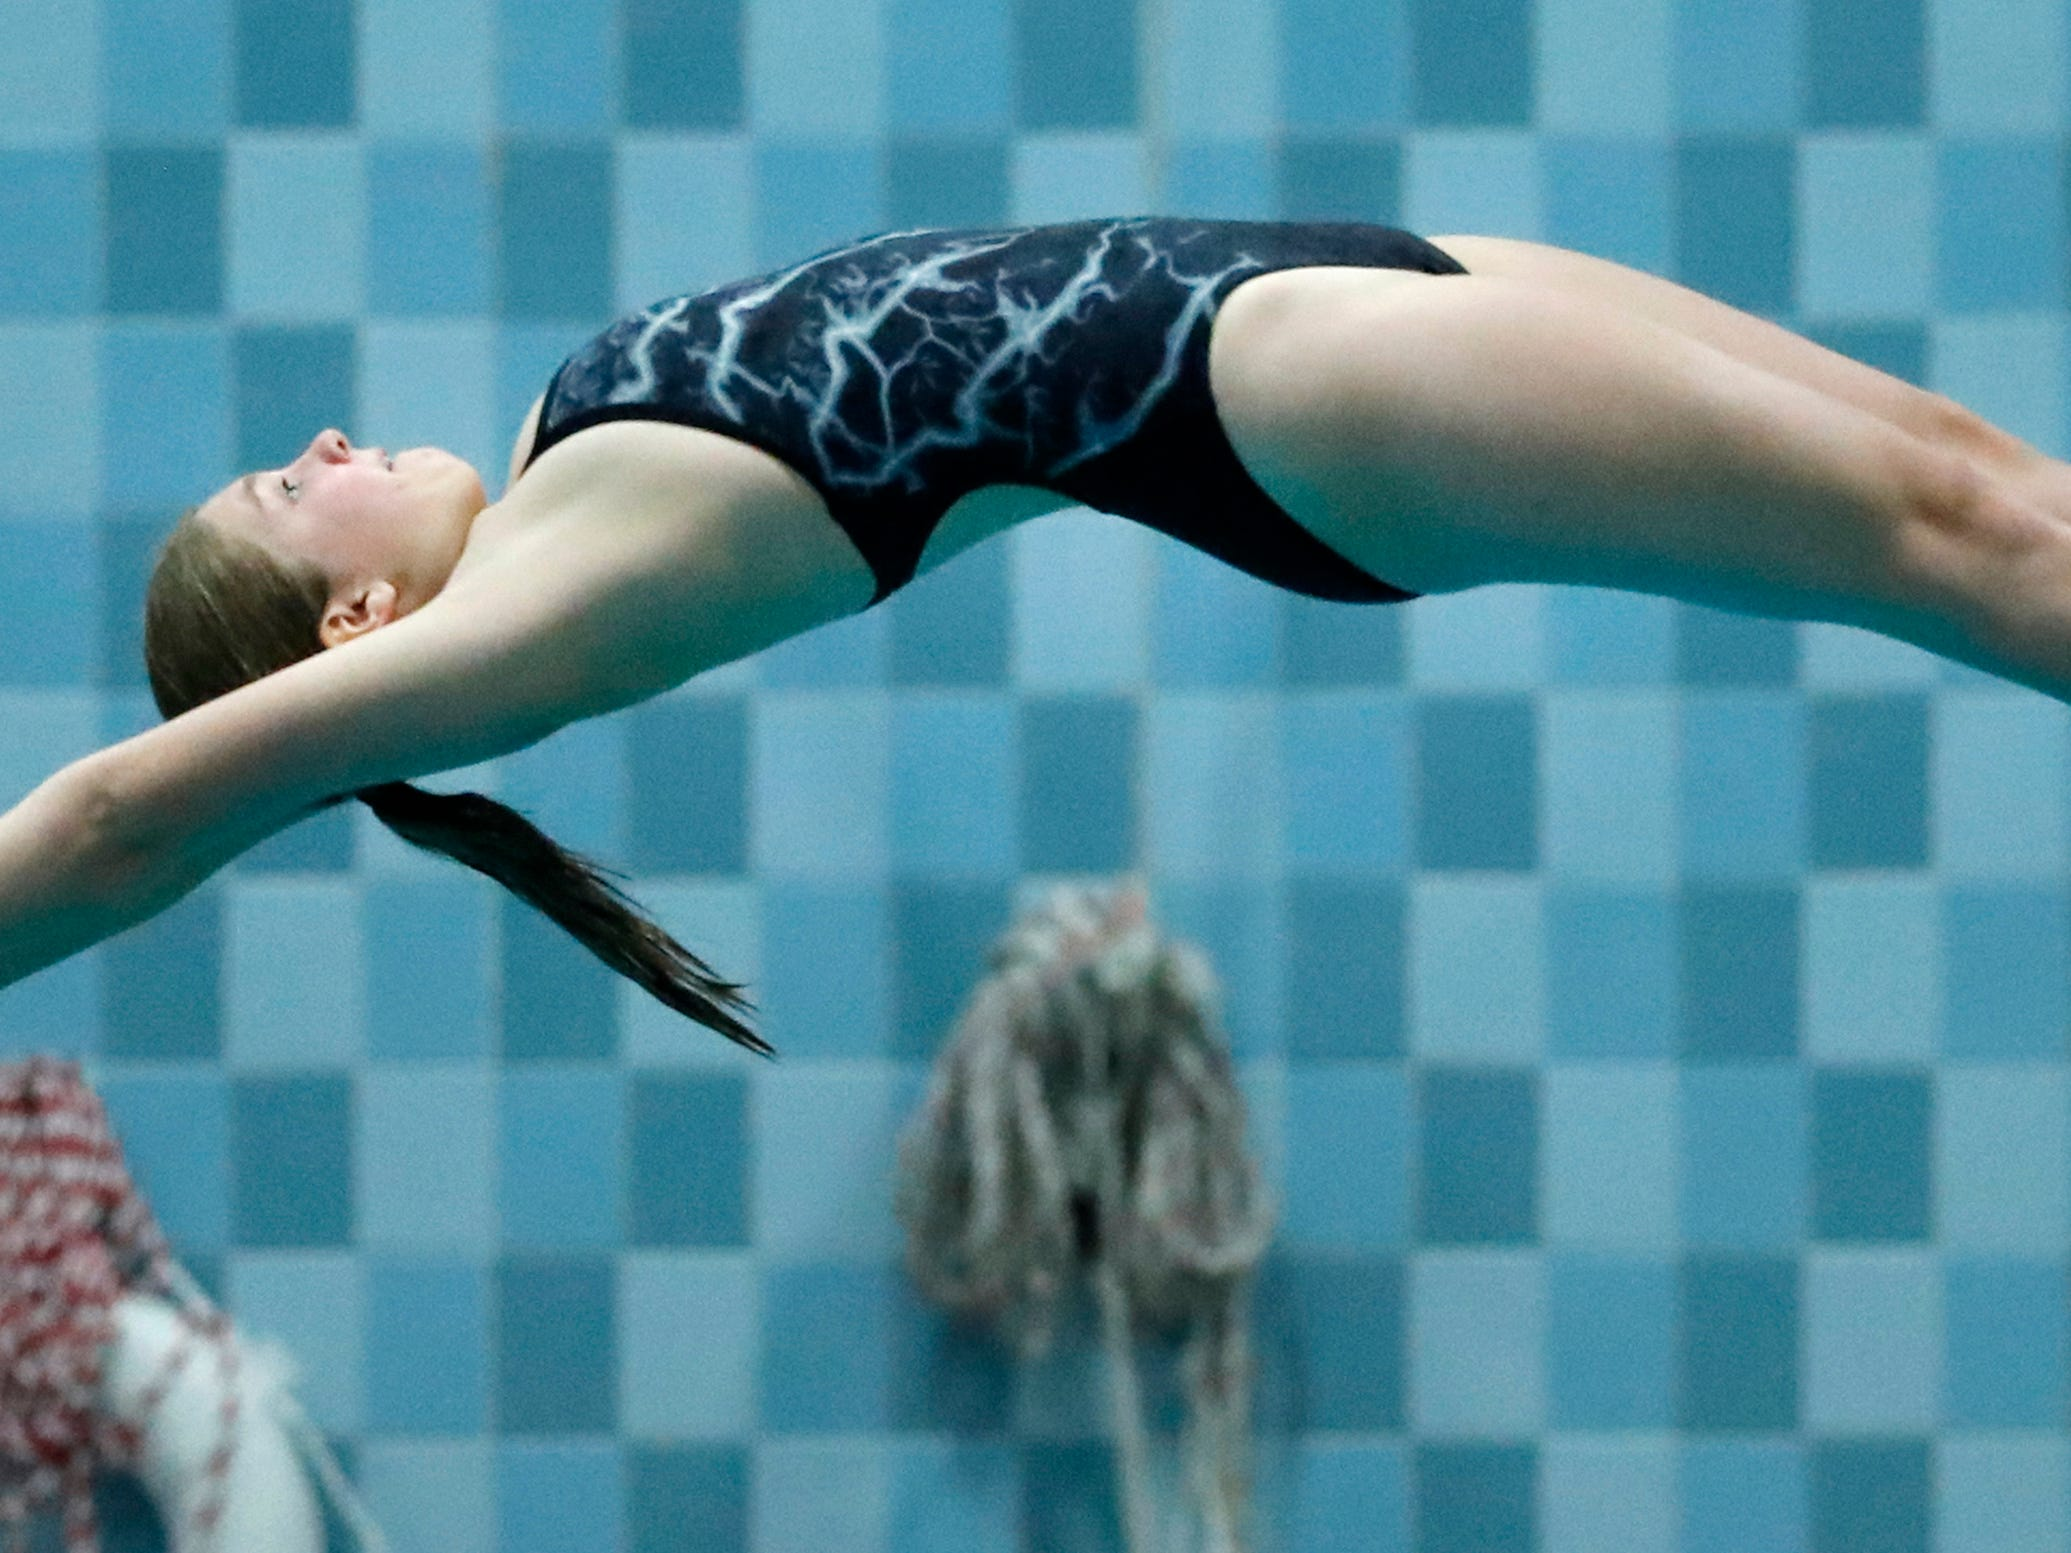 Plymouth's Isabella Josephs competes in the diving finals during WIAA Division 2 State Swimming and Diving Friday, Nov. 9, 2018, at the UW Natatorium in Madison, Wis.